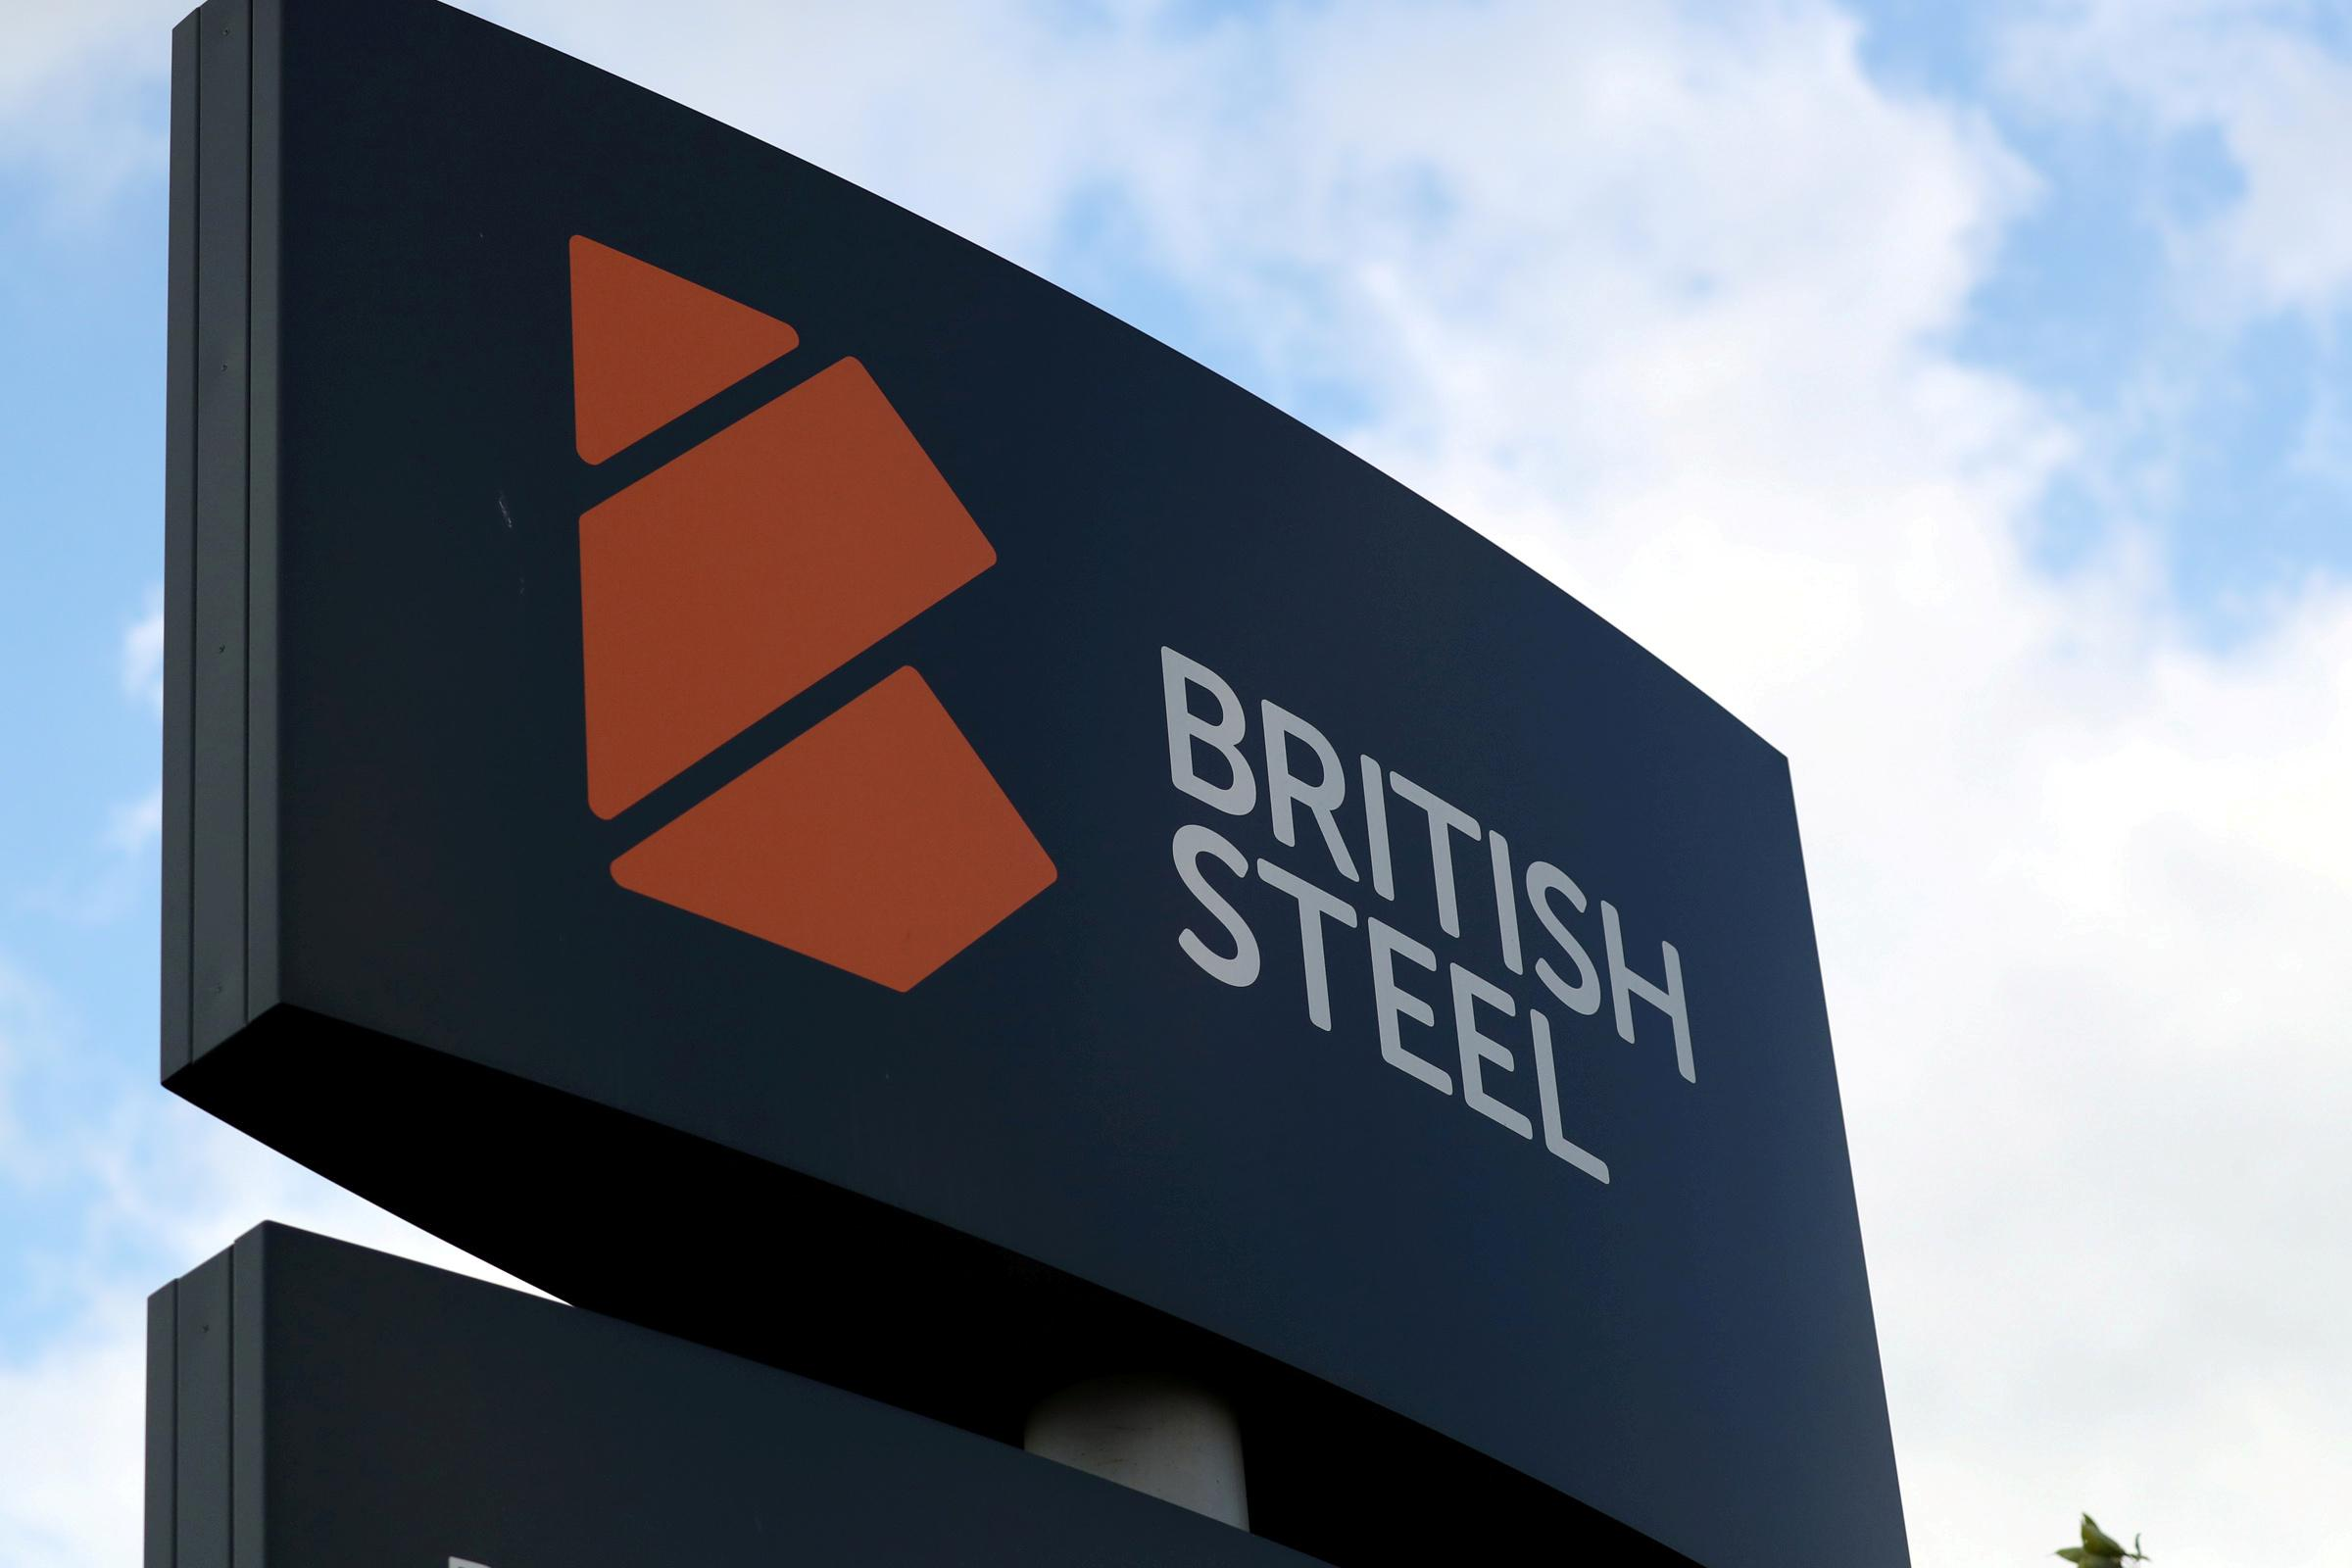 British business minister welcomes outline British Steel deal